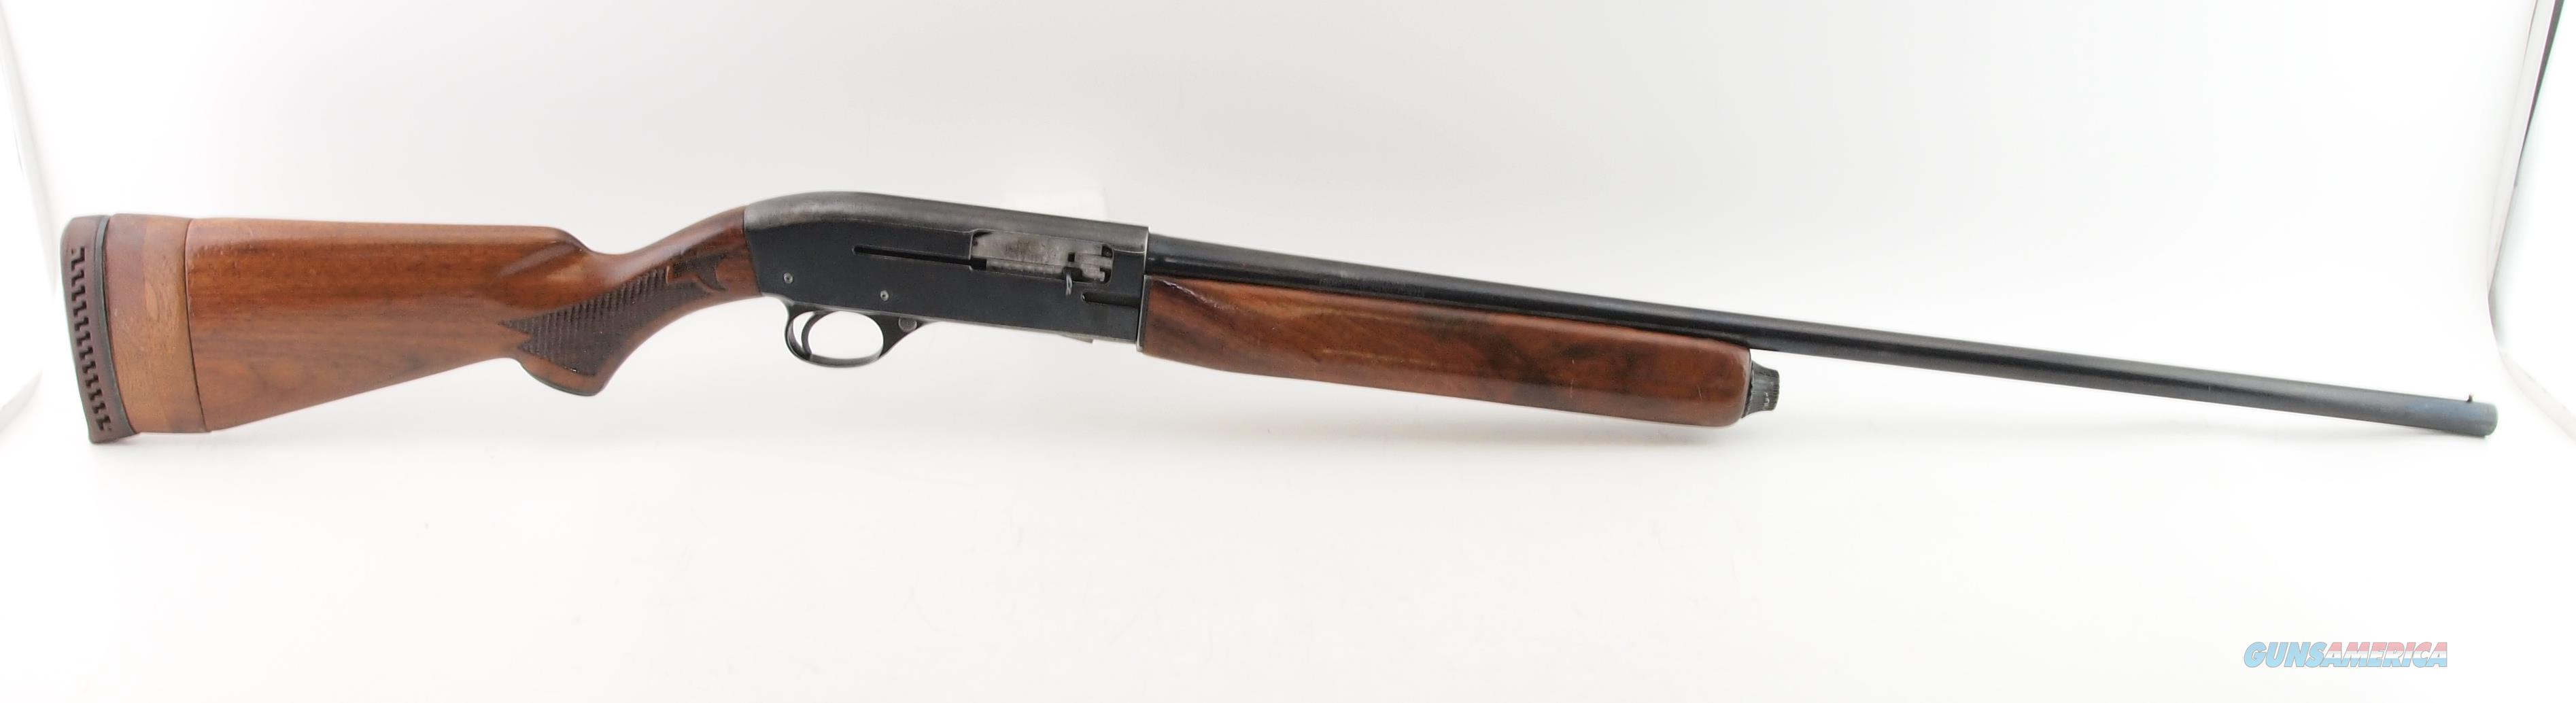 "High Standard SuperMatic Deluxe 20 GA 2 3/4"" and 3"" Shells  Guns > Shotguns > High Standard Shotguns"